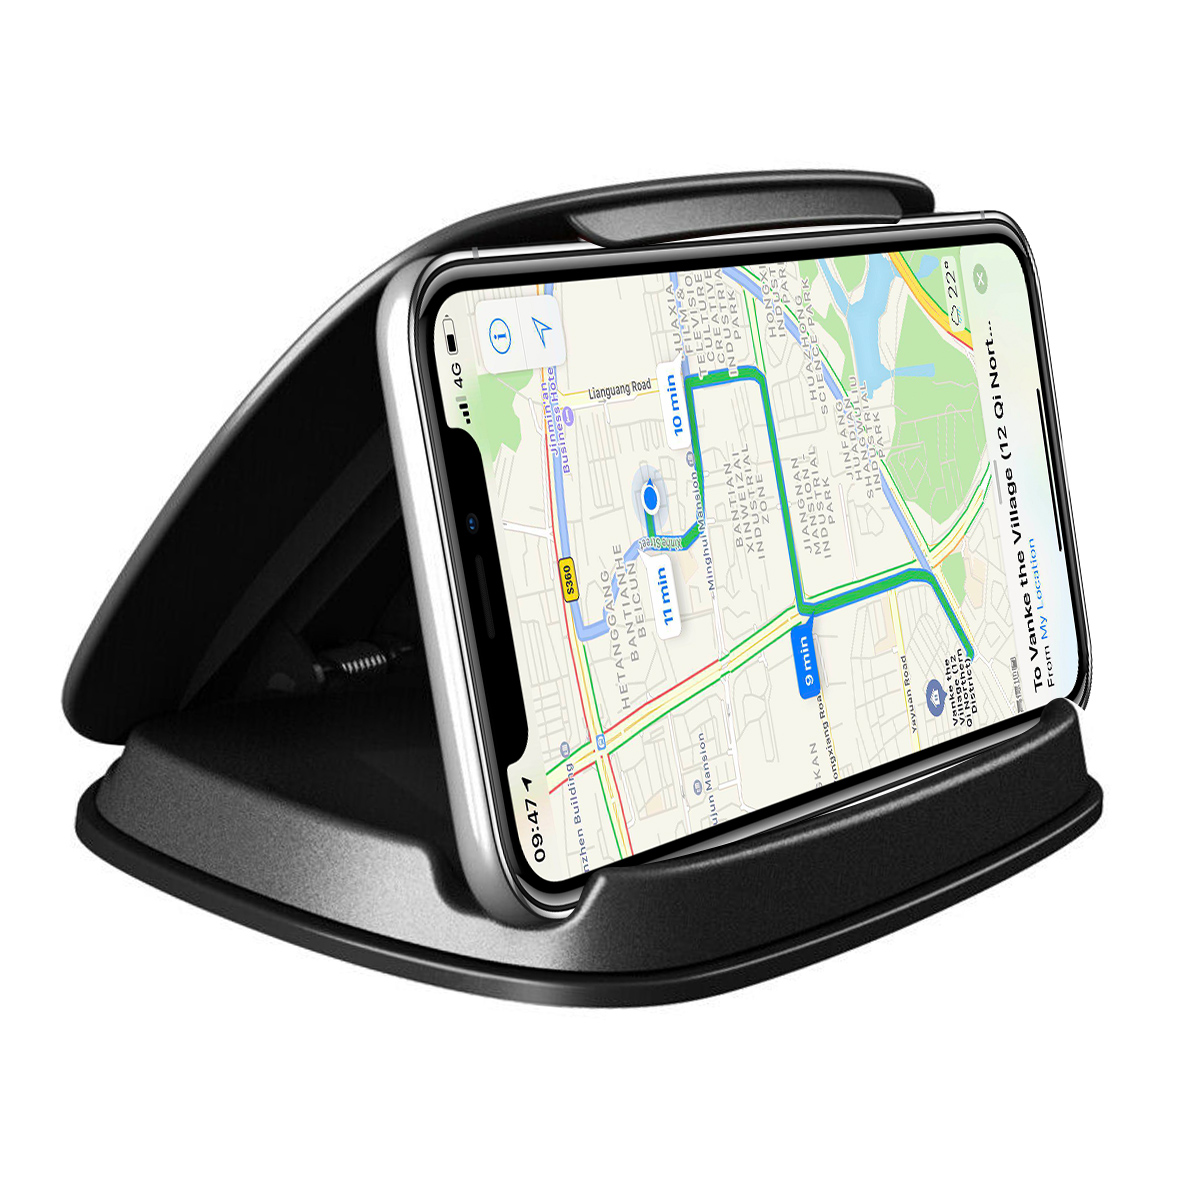 SOONHUA Car Phone Holder Dashboard Mount Stands GPS Navigation Device Bracket Phone Stand Free Shipping